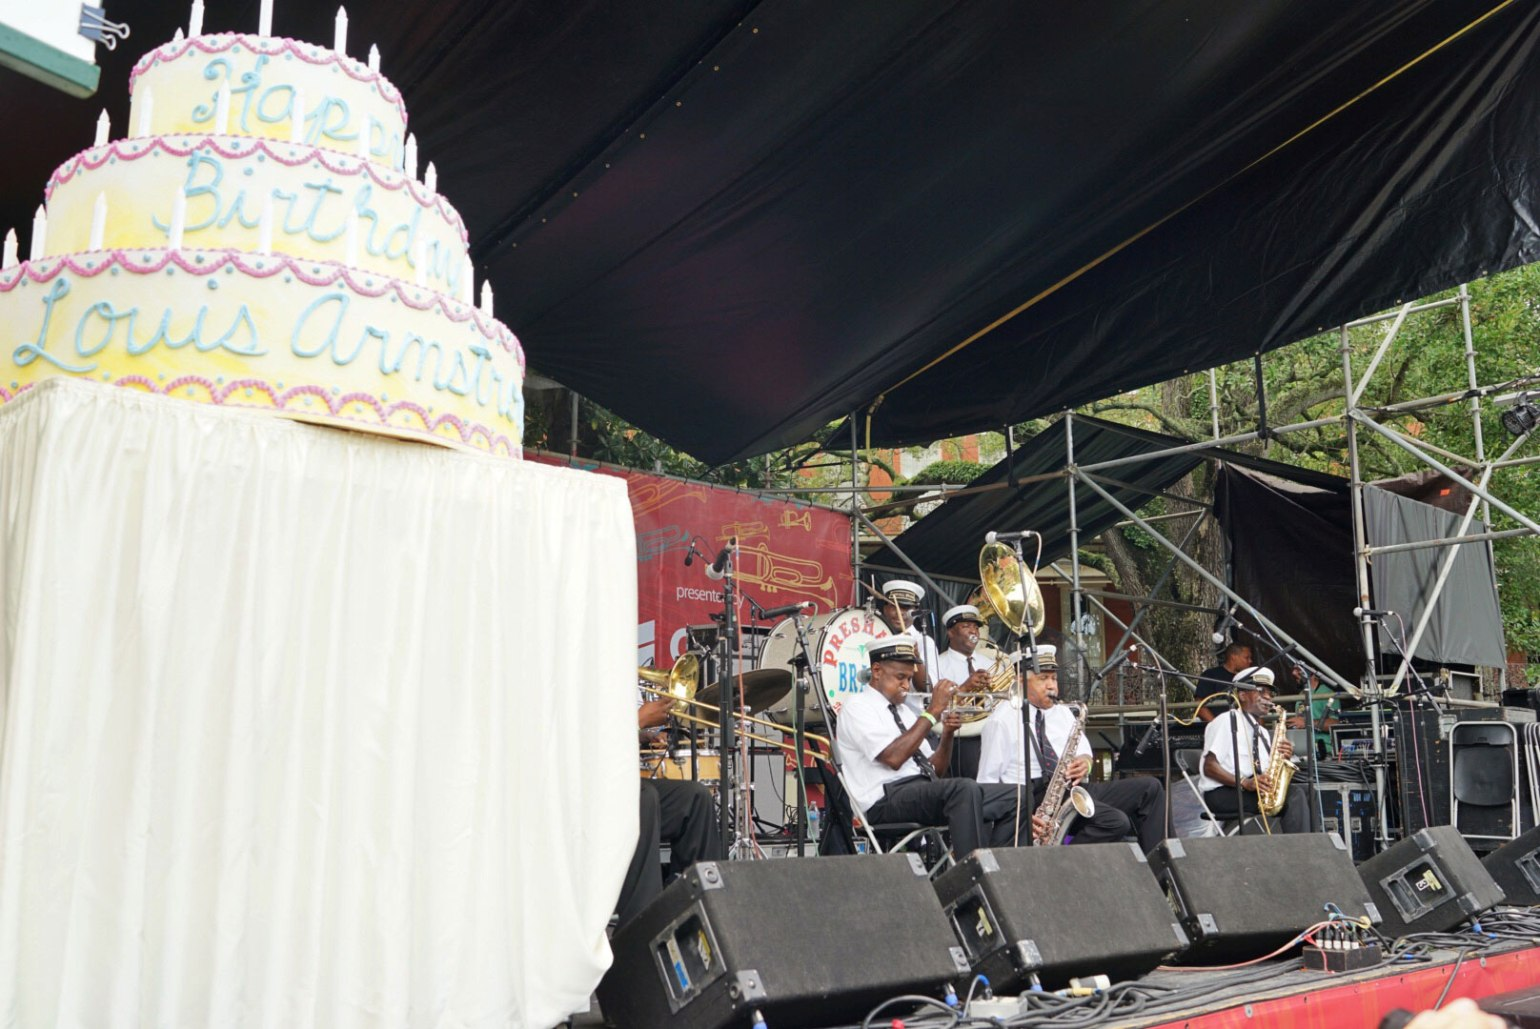 It wouldn't be a birthday celebration without a cake! Photo: Paul Broussard